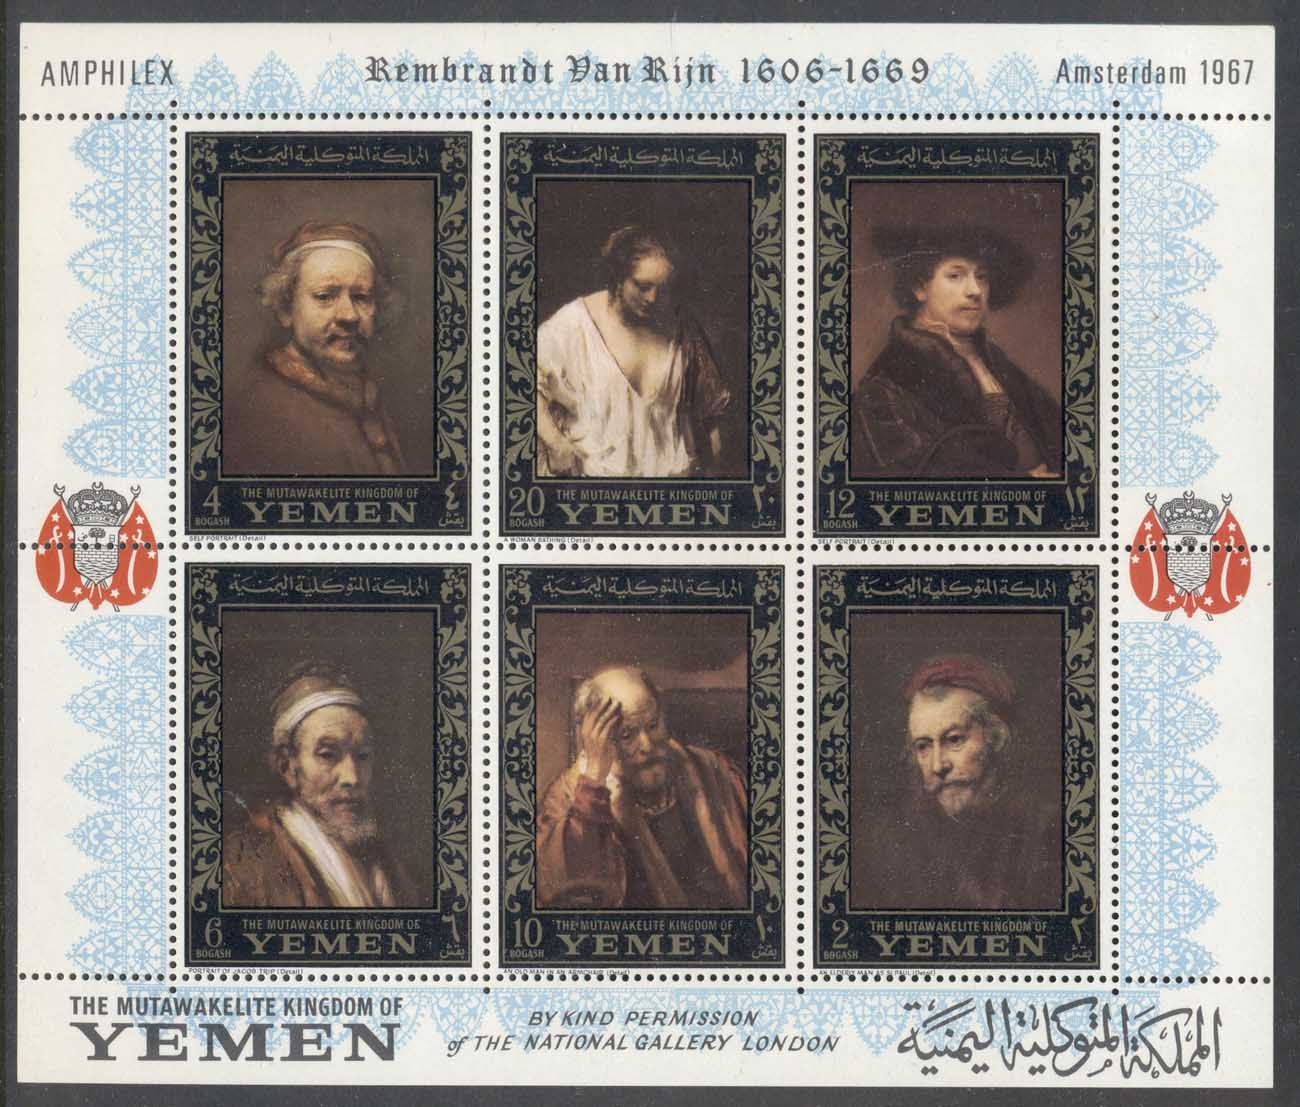 Yemen Kingdom 1967 Mi#MSA37A Rembrandt Paintings, Amphilex Stamp Ex, gold borders MS MUH